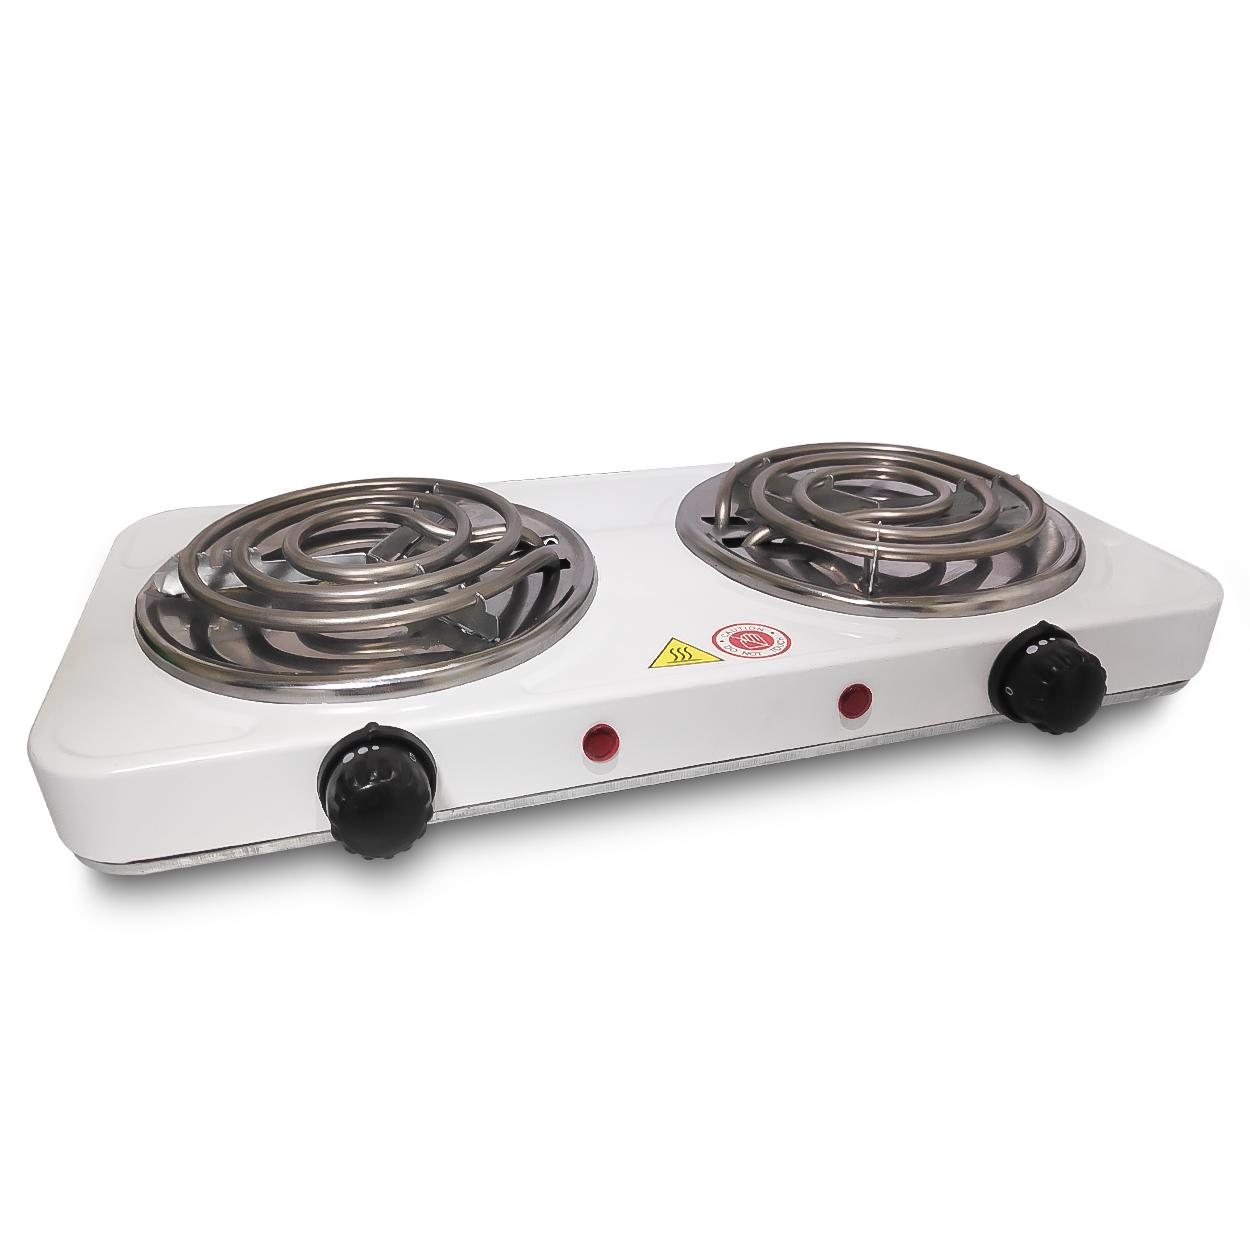 4a73448903c StarHome Hot Plate Double Burner Electric Cooking Stove (White) 220v 2000  watts